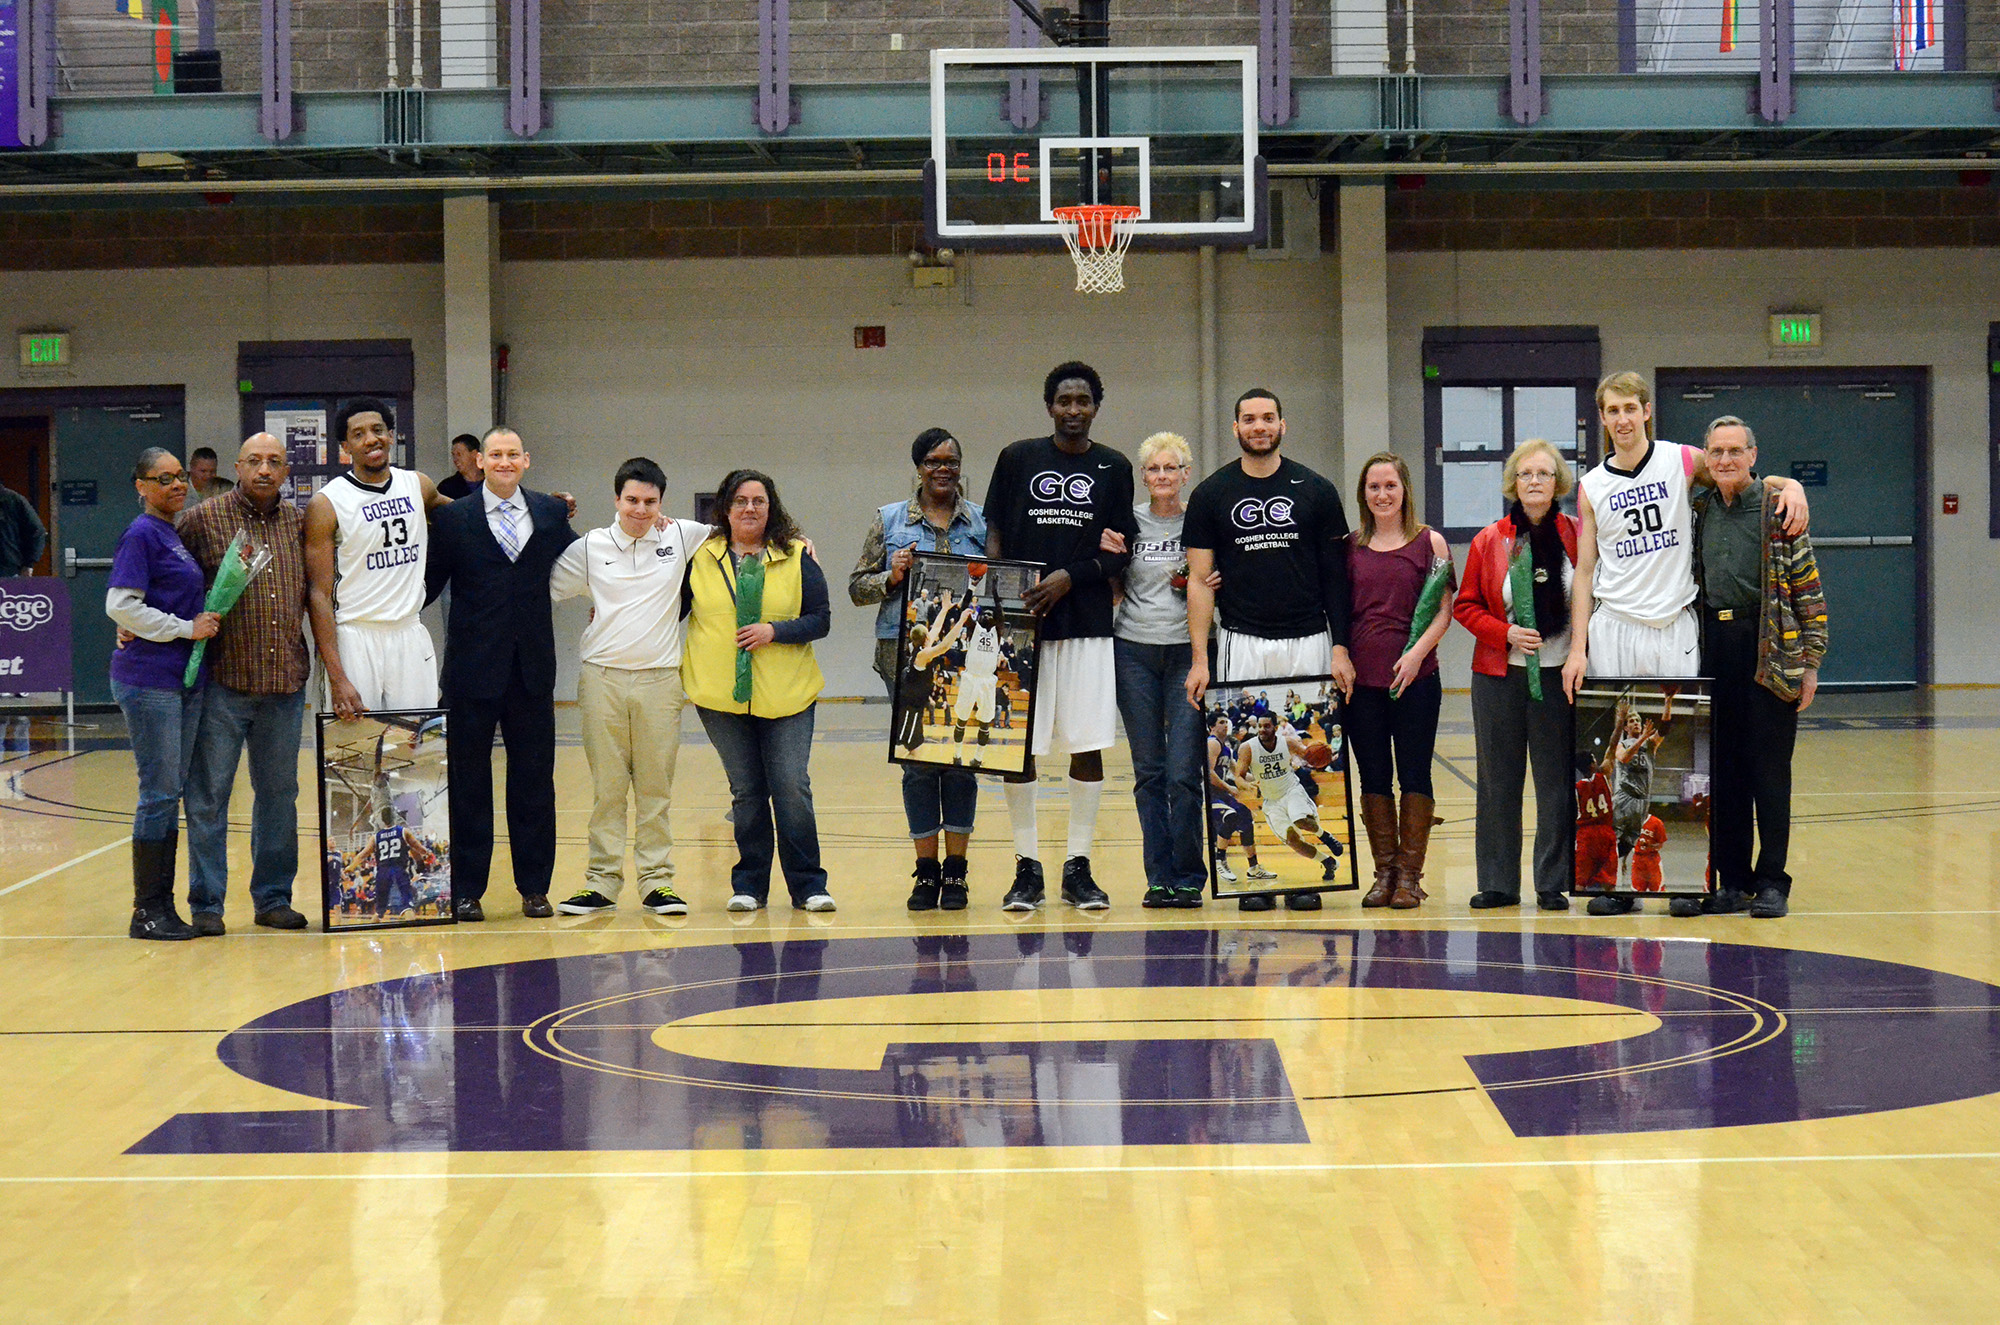 basketball players with parents